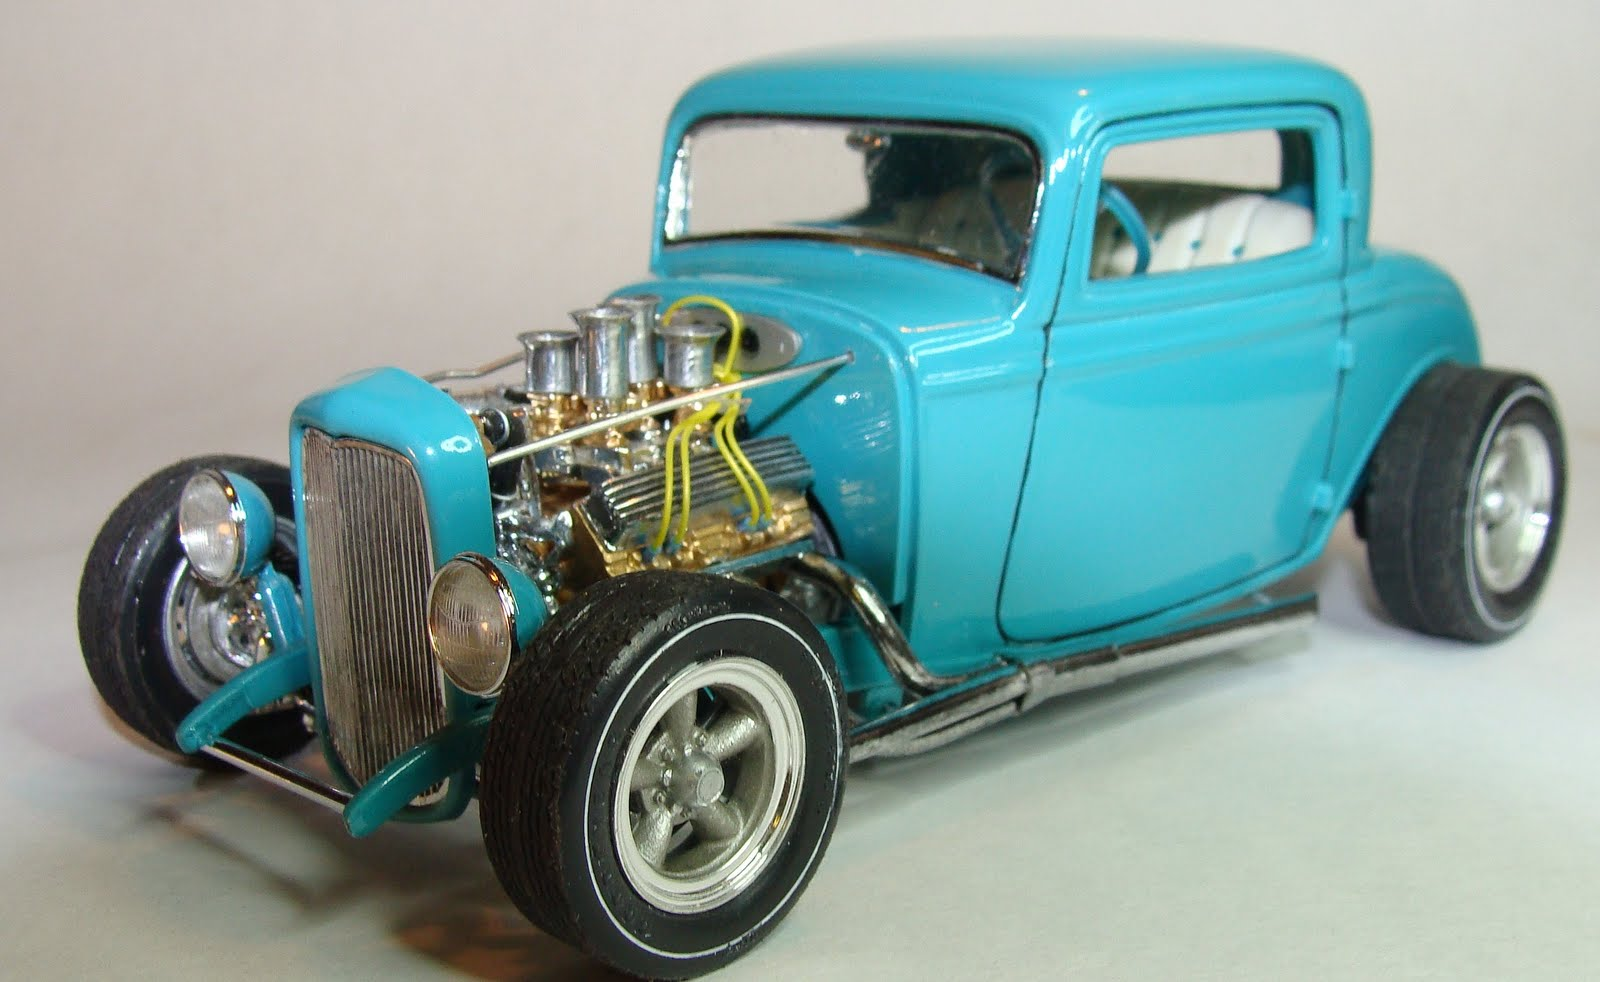 Model Cars: 1932 Ford 3 Window Coupe (Lowboy)